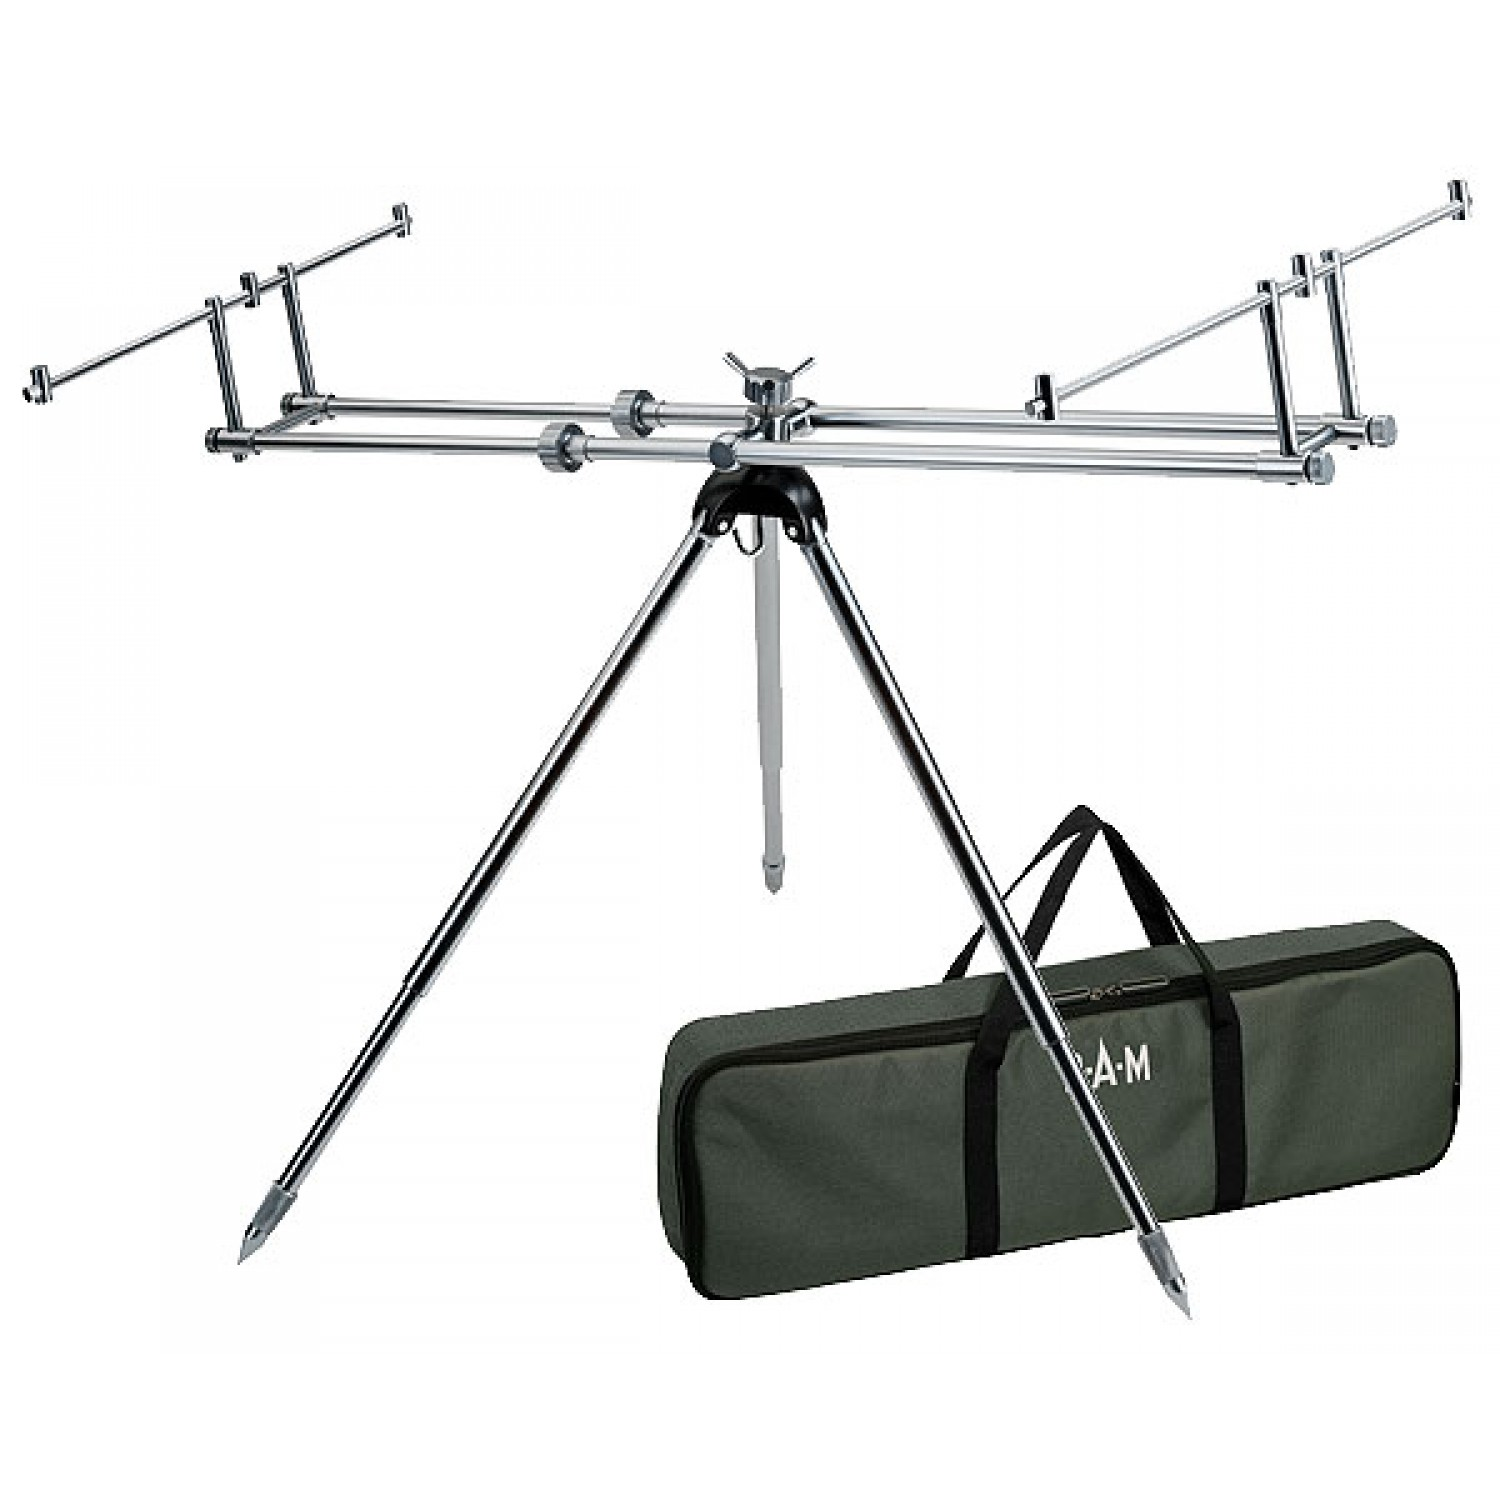 DAM ROD POD GUNSMOKE ALU LIGHT